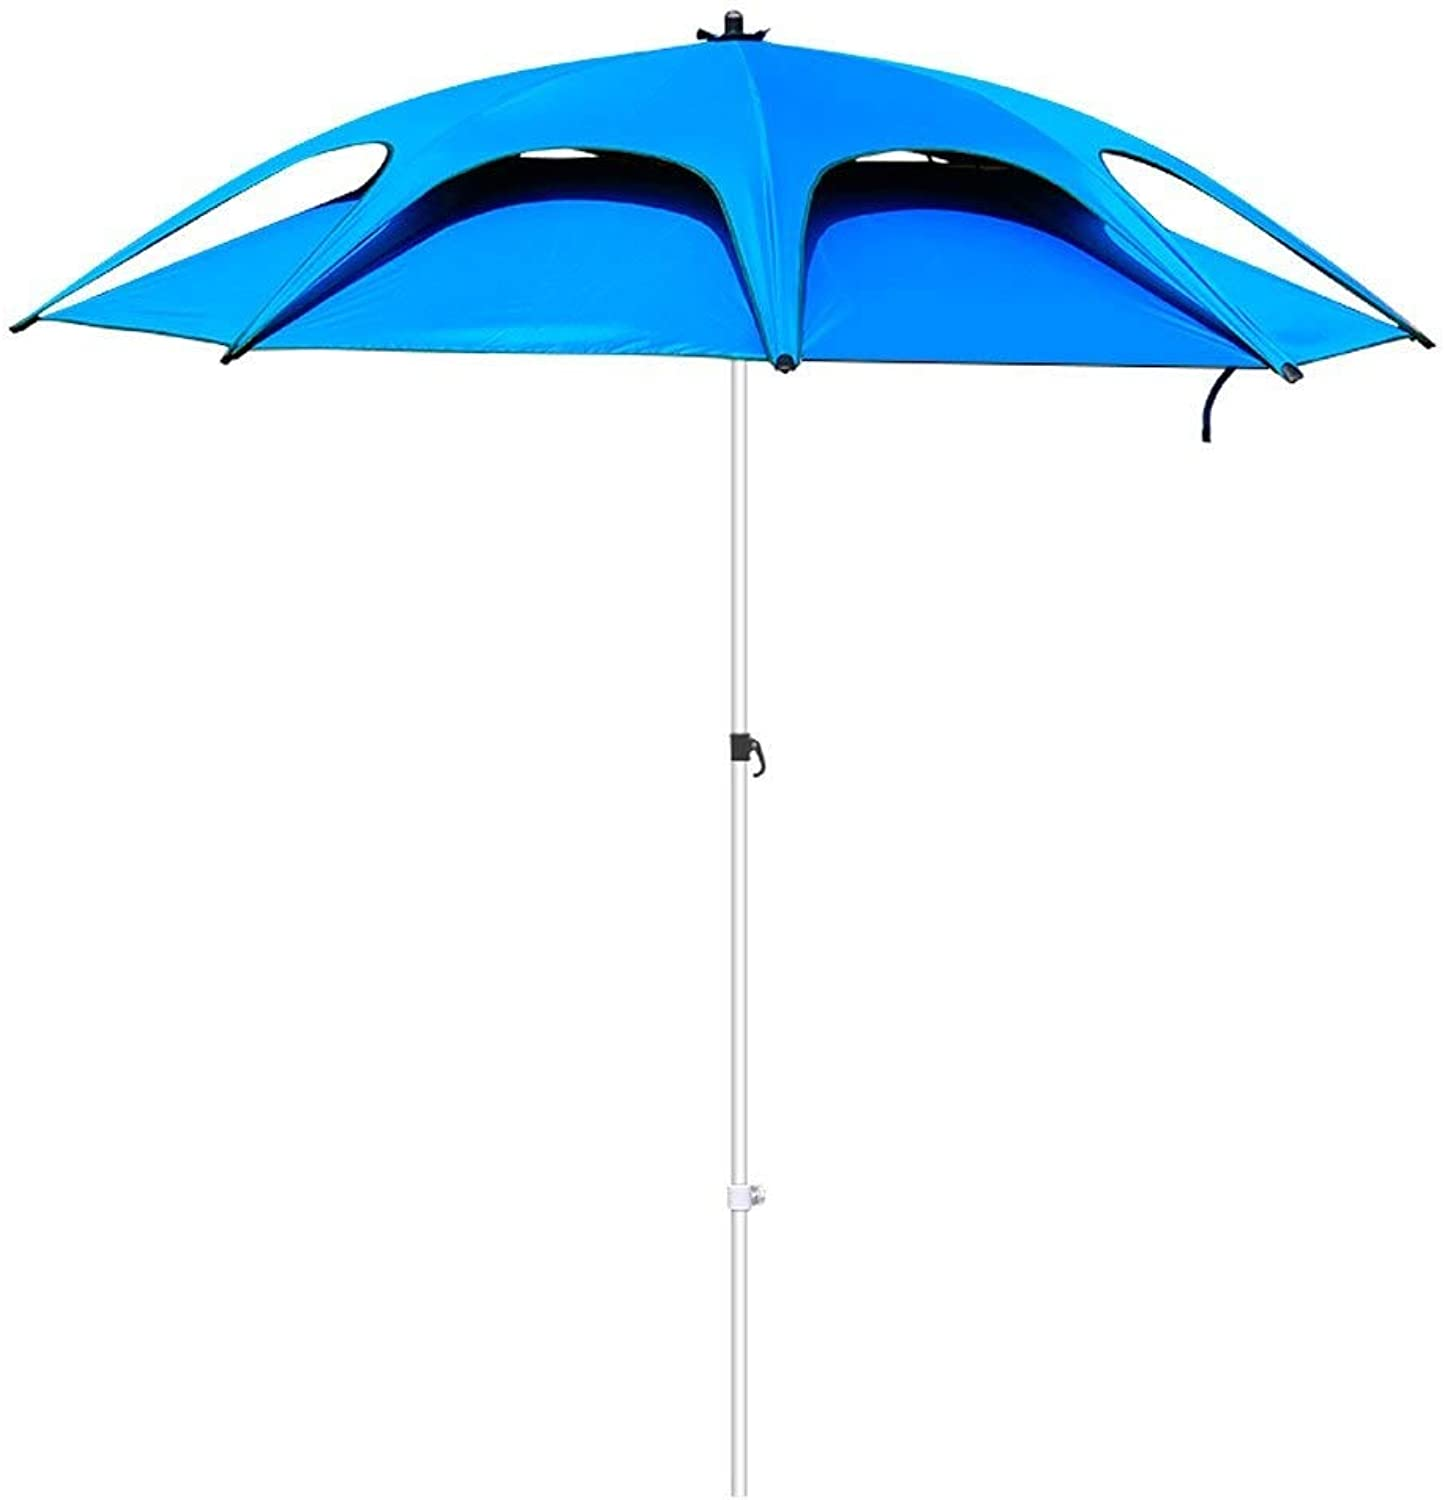 POLBB Outdoor Umbrella 2.4 M Double Curved Outdoor Leisure Fishing Umbrella Parasol Rainproof Fishing Supplies Outdoor Fishing Equipment Ventilation Umbrella